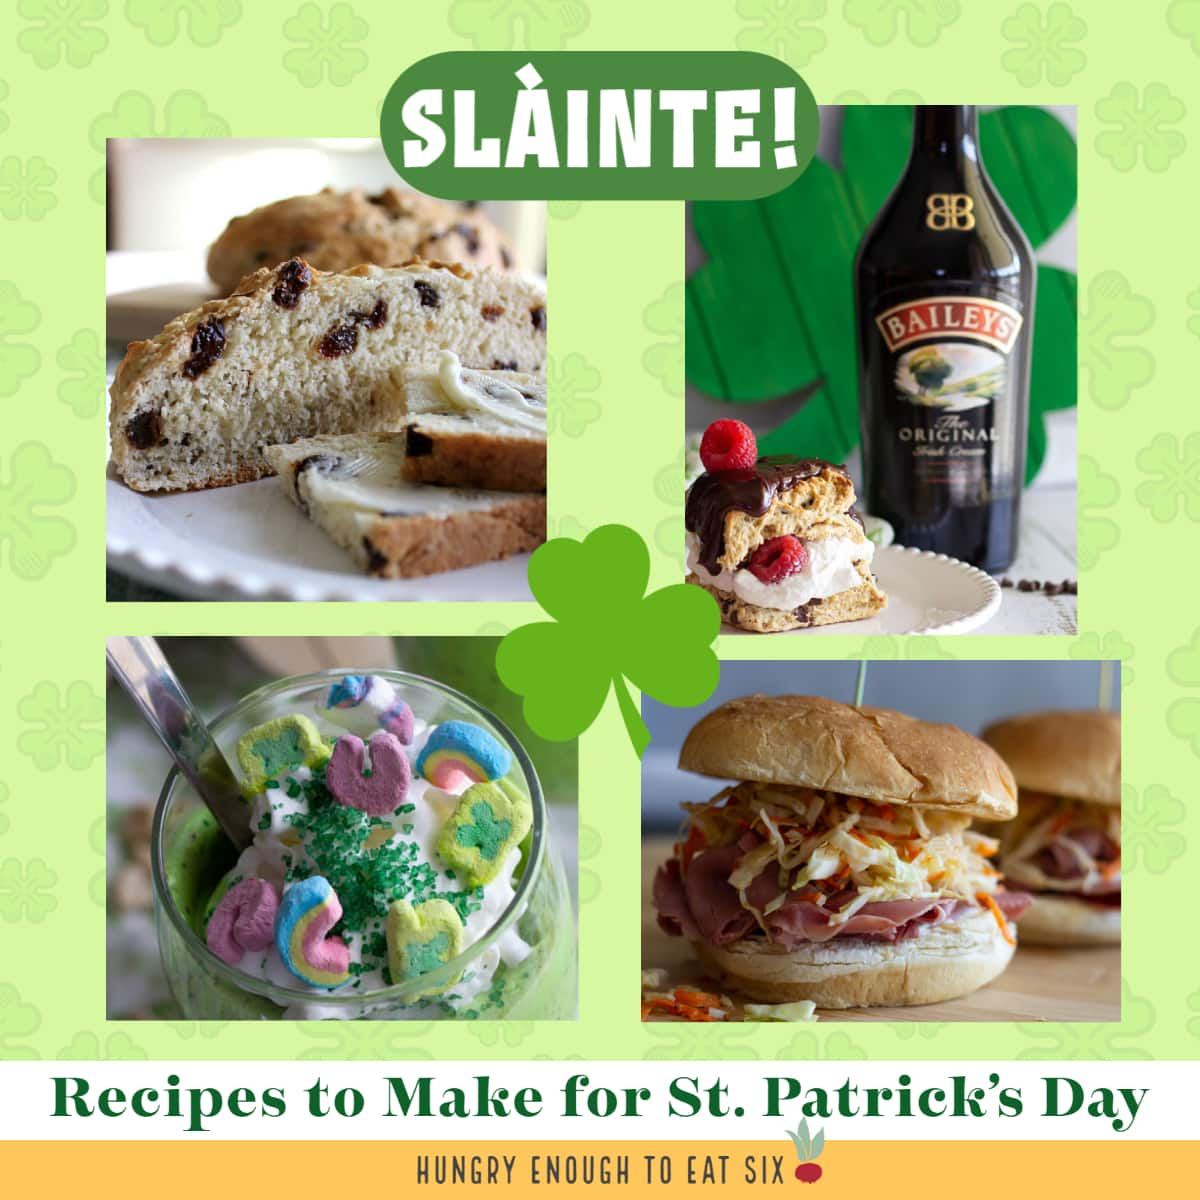 Irish foods like bread, Baileys, Lucky Charms, and sandwiches